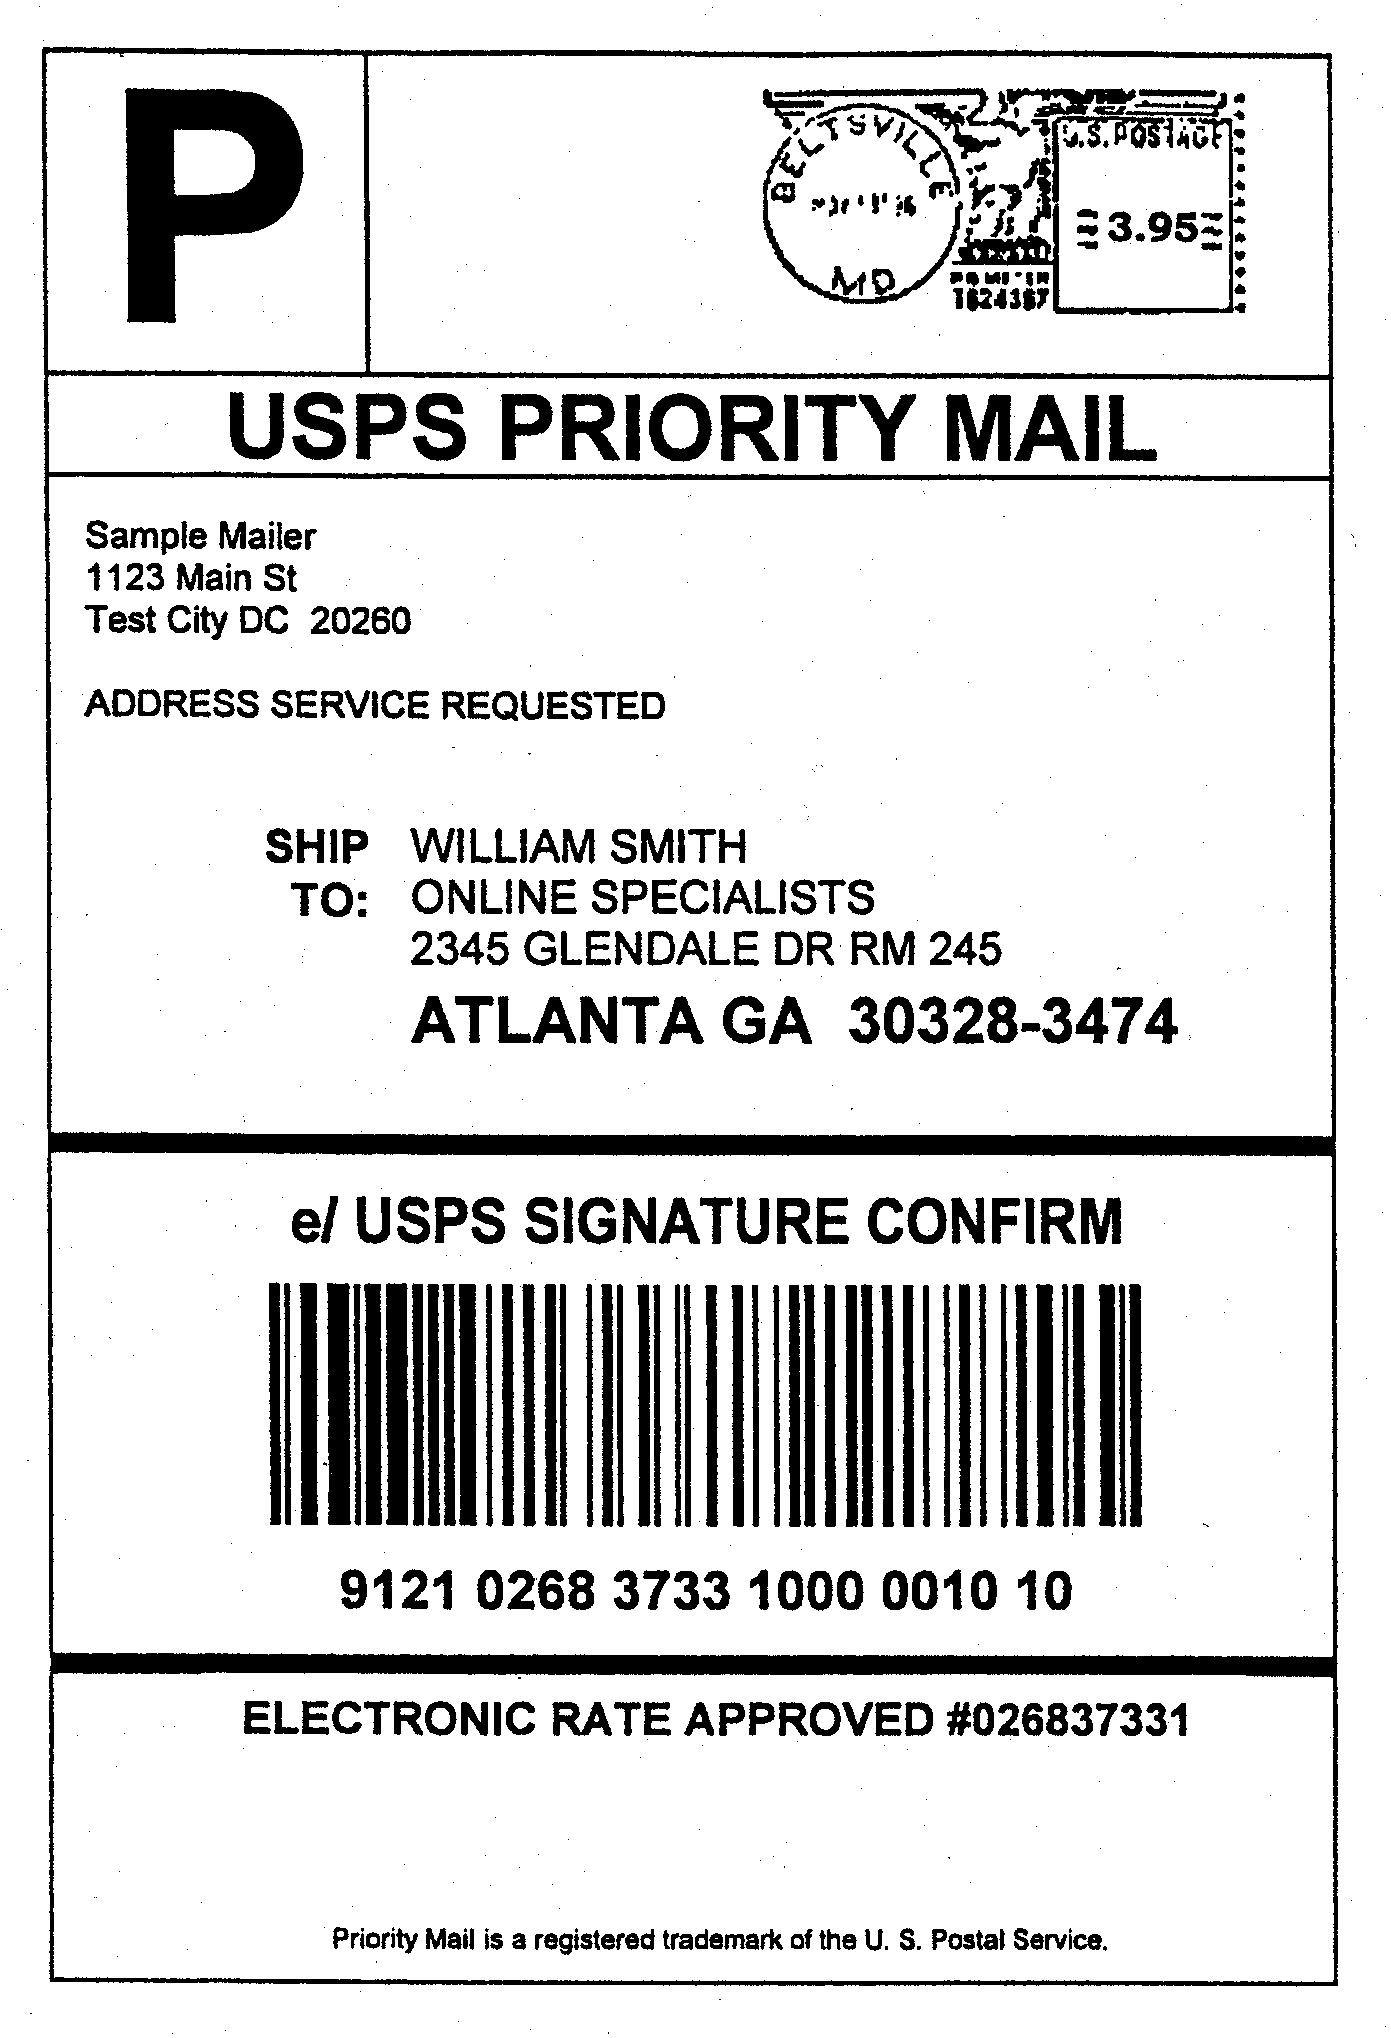 This is a graphic of Nerdy Priority Mail Express Mailing Label